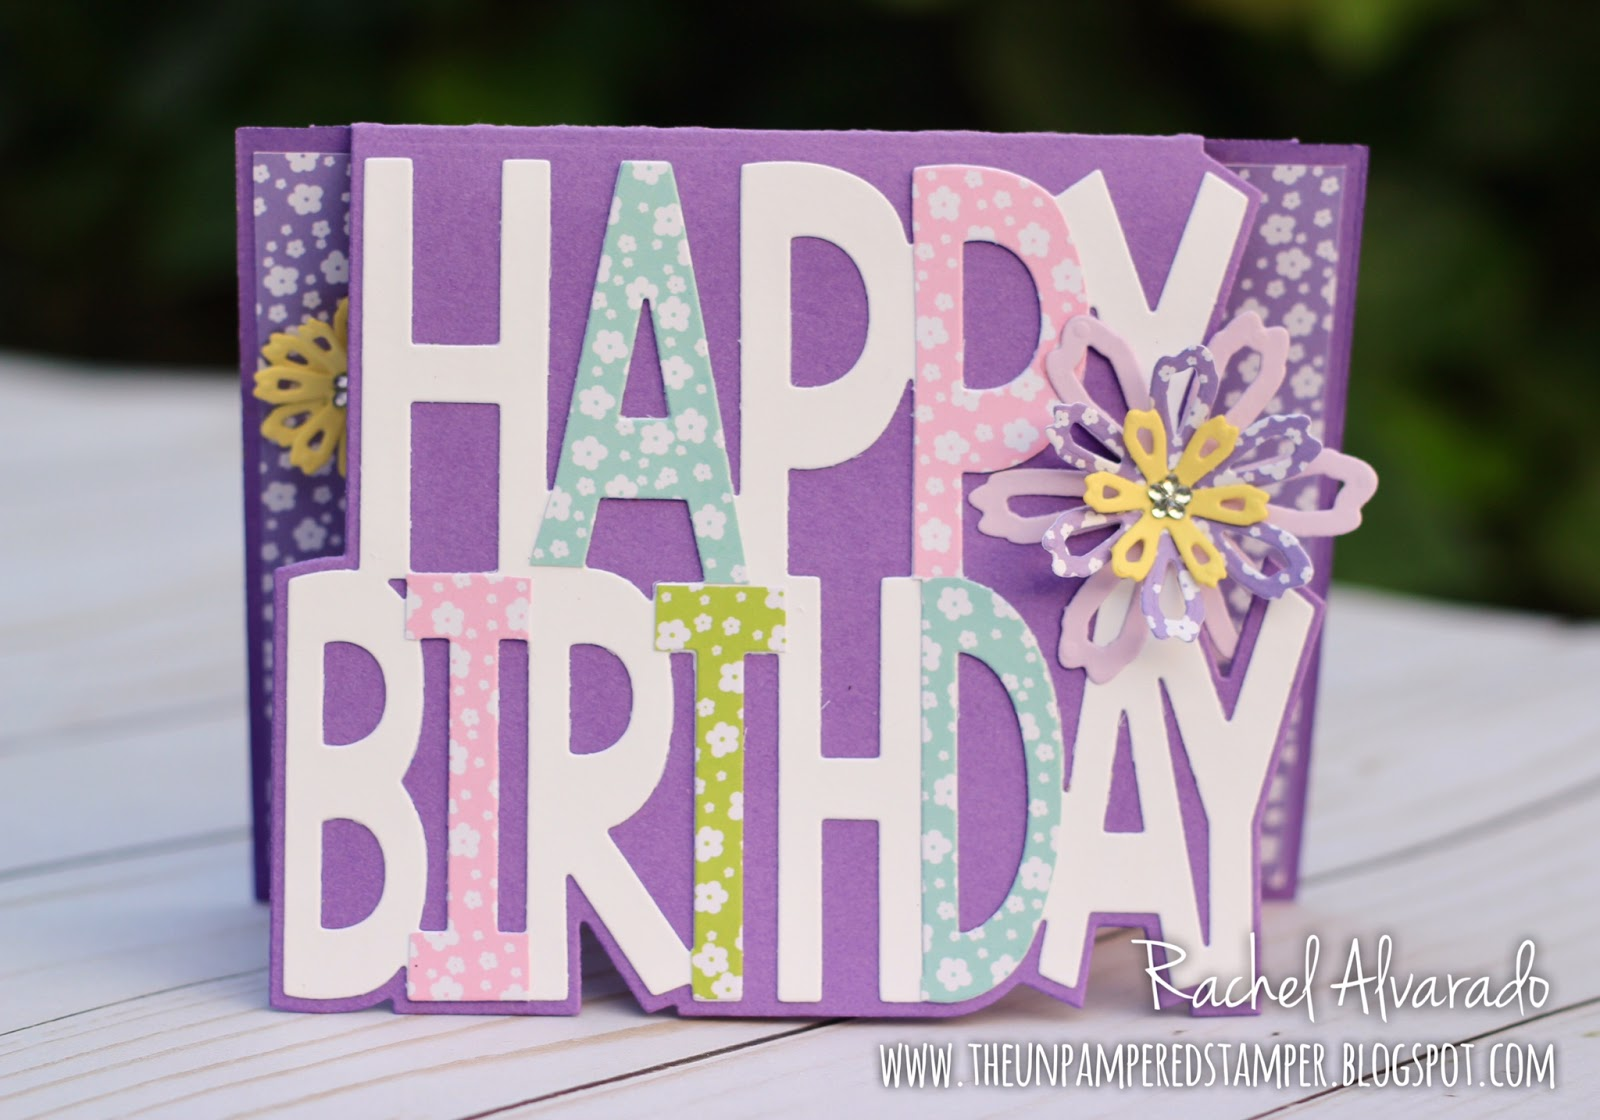 I Also Added A Few Shabby Chic Flowers On This Birthday Card The Patterned Paper Came From Sunshine Collection